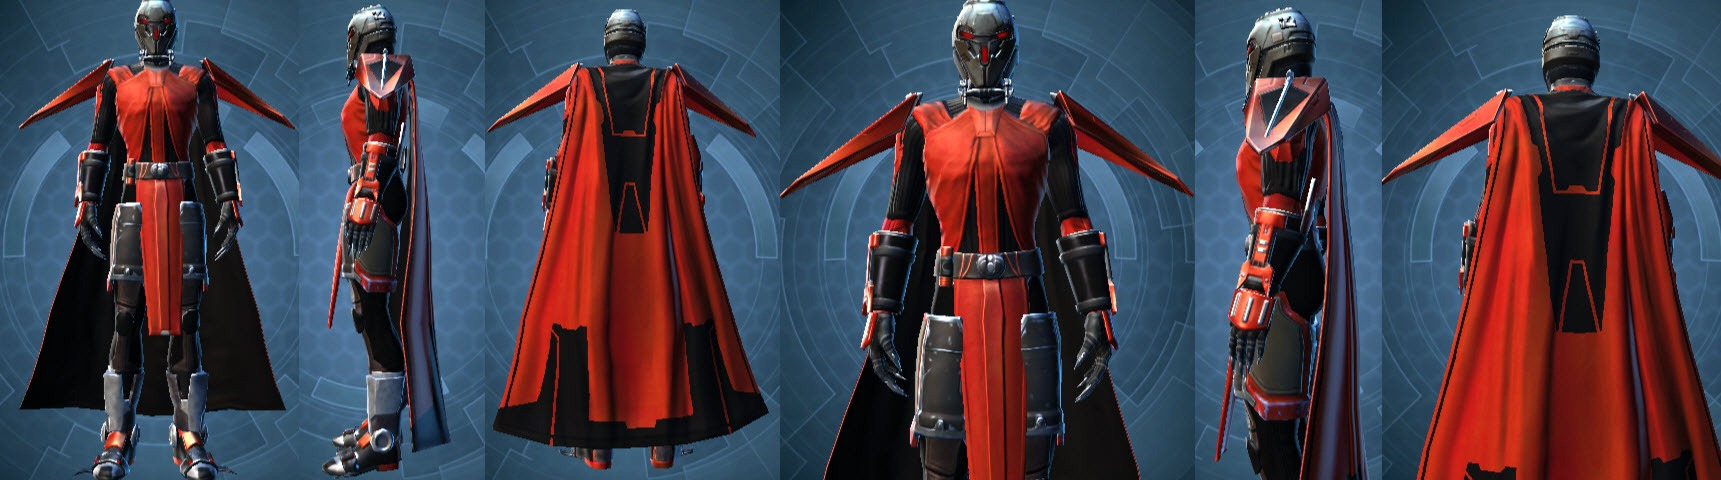 swtor-frenzied-zealot-armor-set-wingman-dogfighter's-starfighter-pack-male